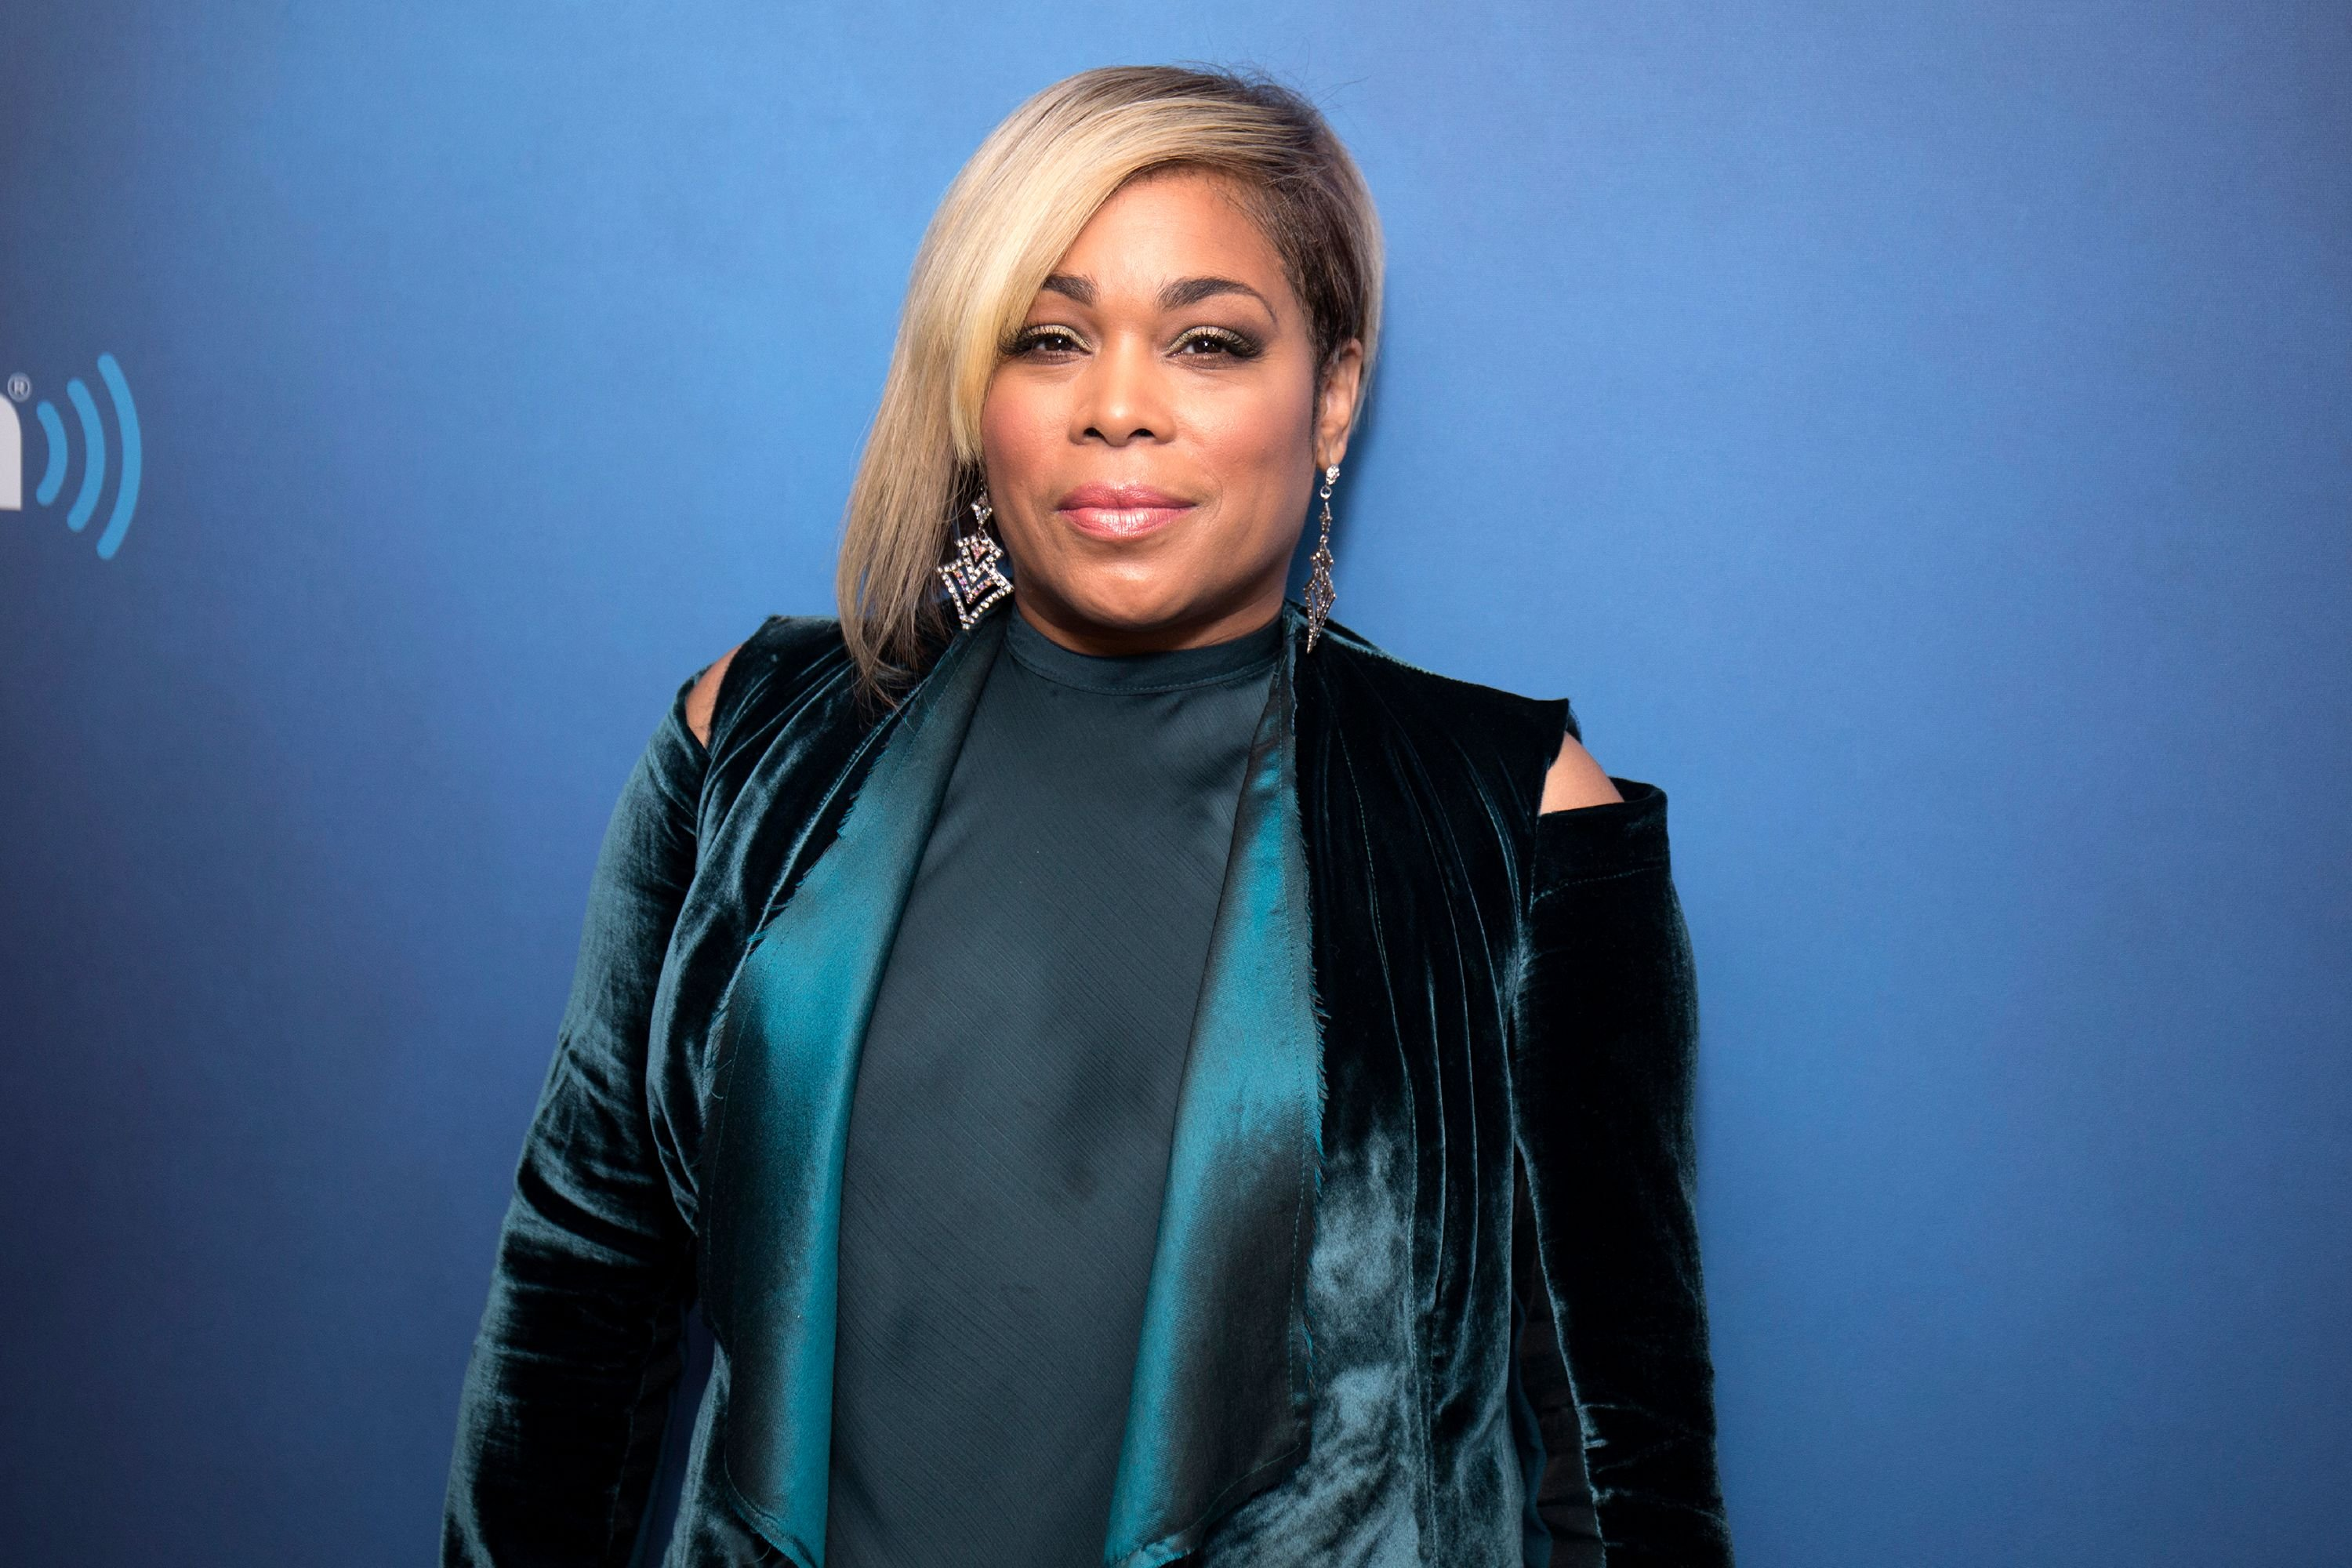 Tionne 'T-Boz' Watkins at SiriusXM Studios on September 12, 2017 in New York City   Photo: Getty Images